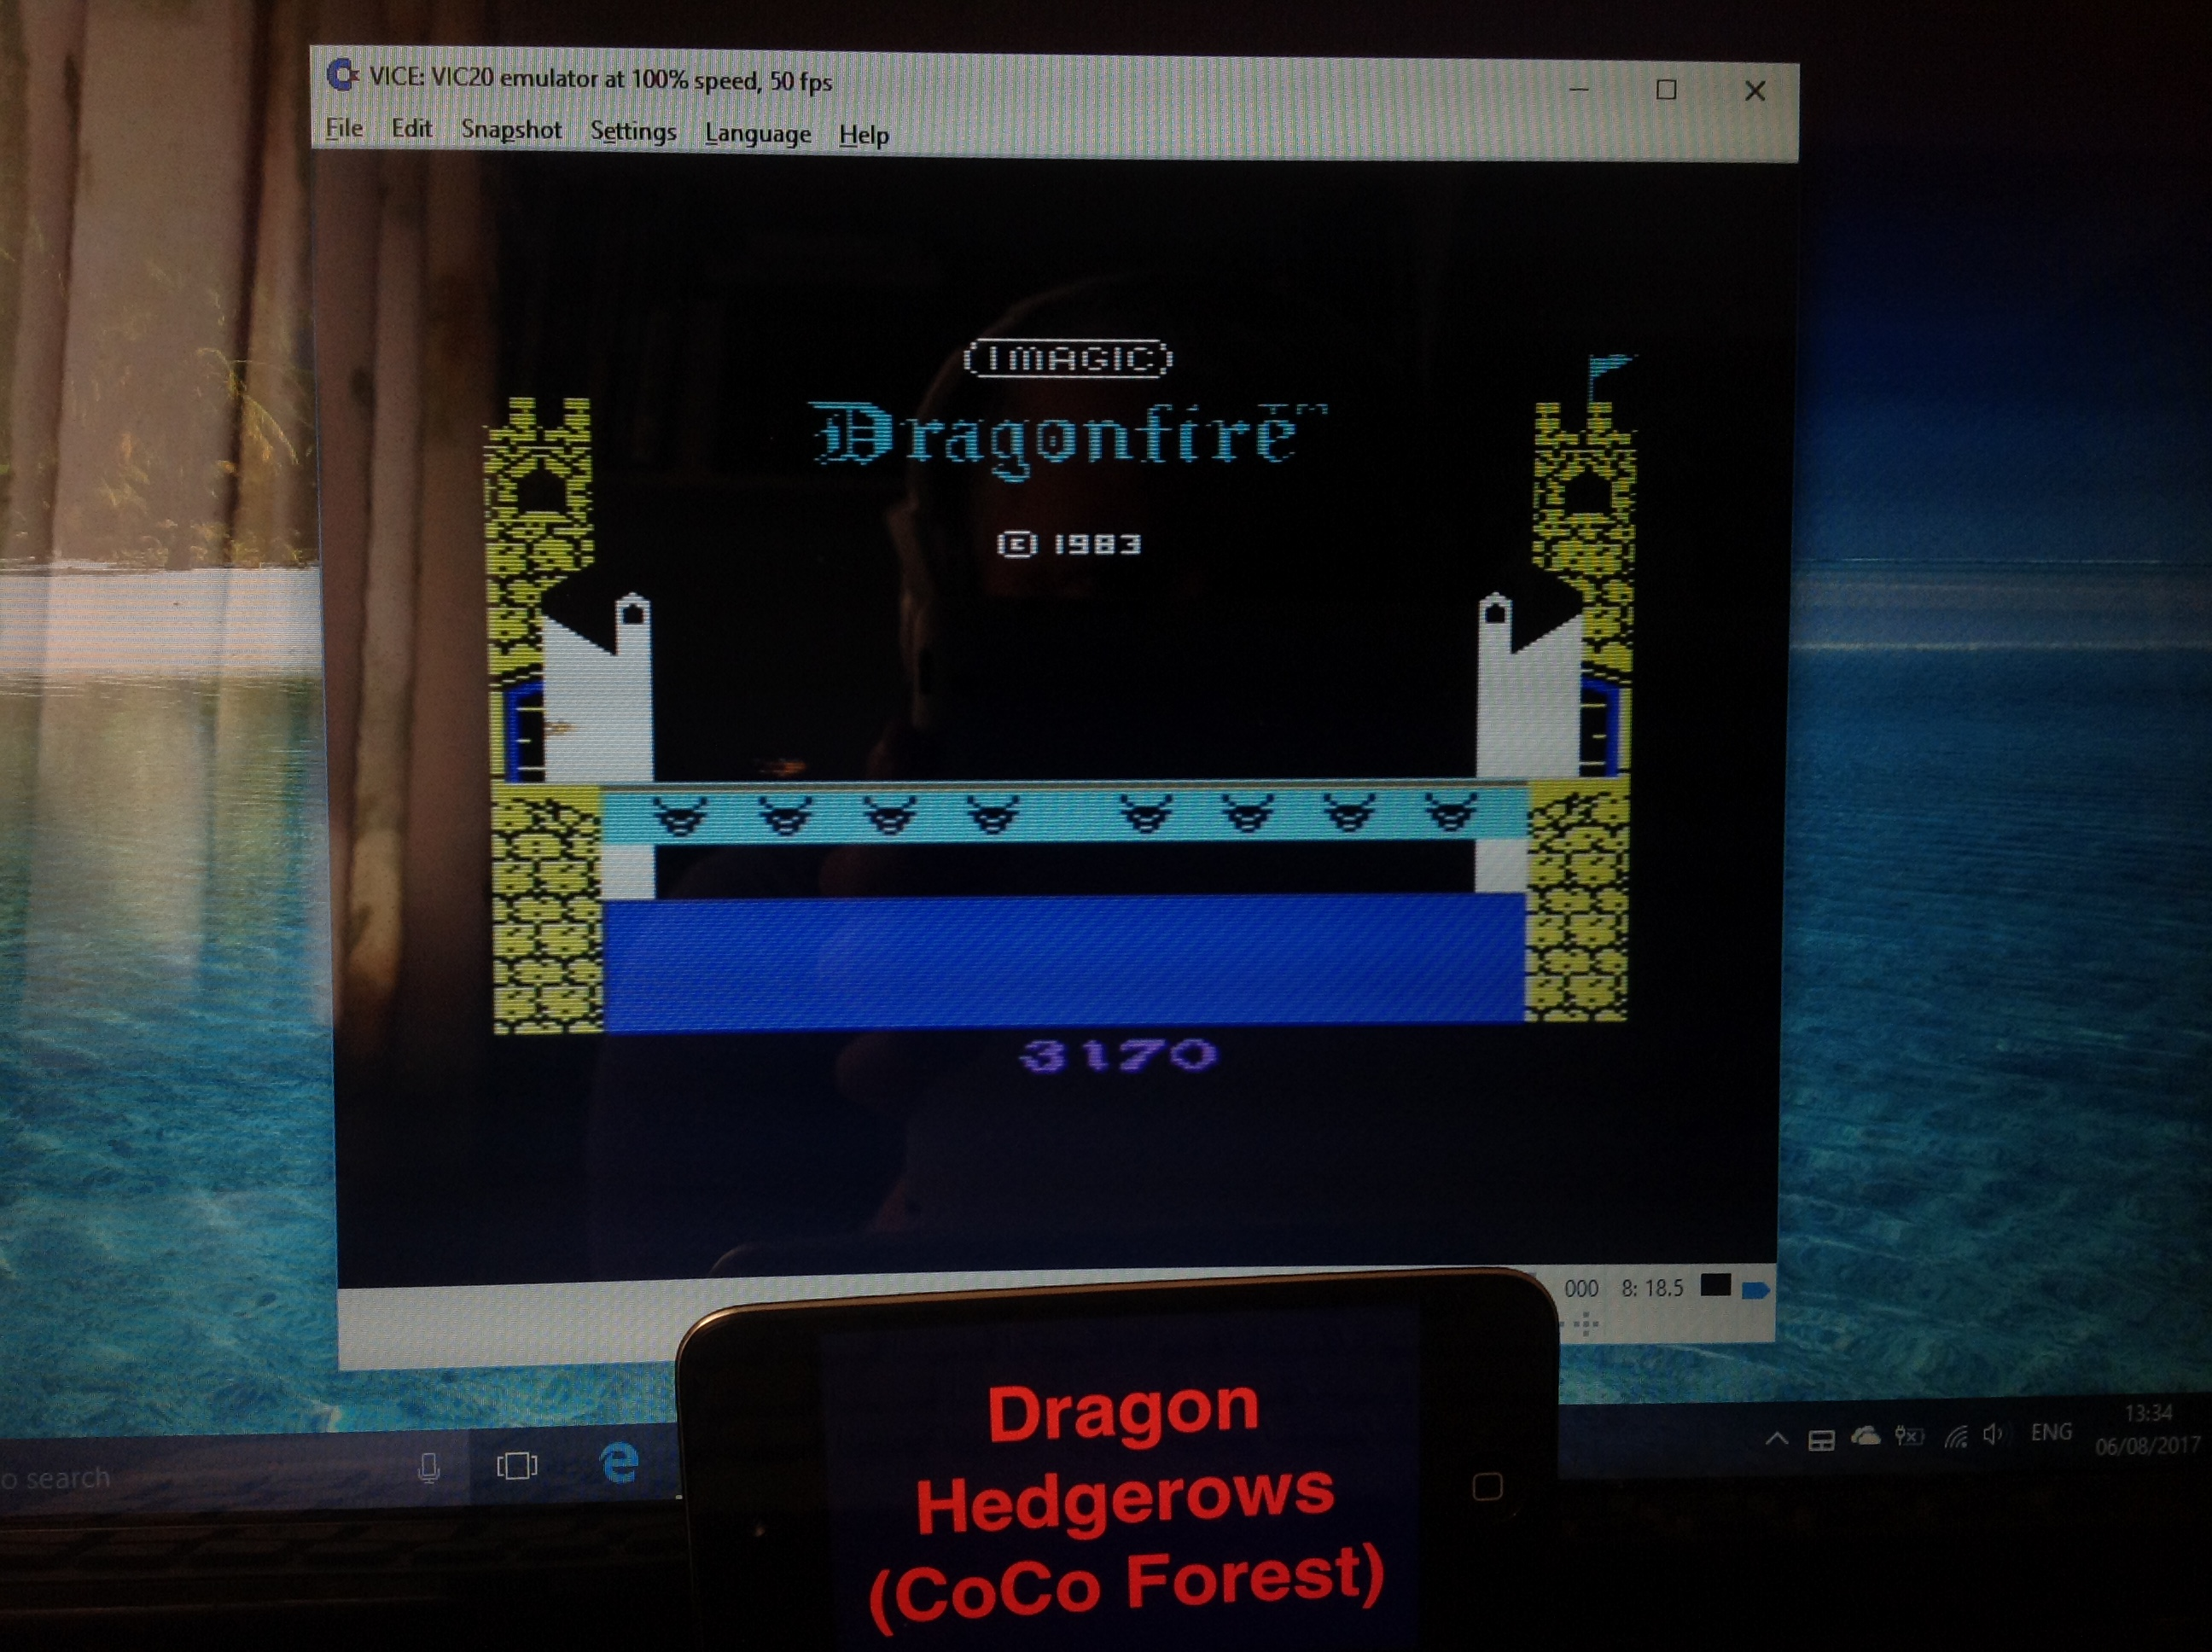 CoCoForest: Dragonfire (Commodore VIC-20 Emulated) 3,170 points on 2017-08-06 08:43:20